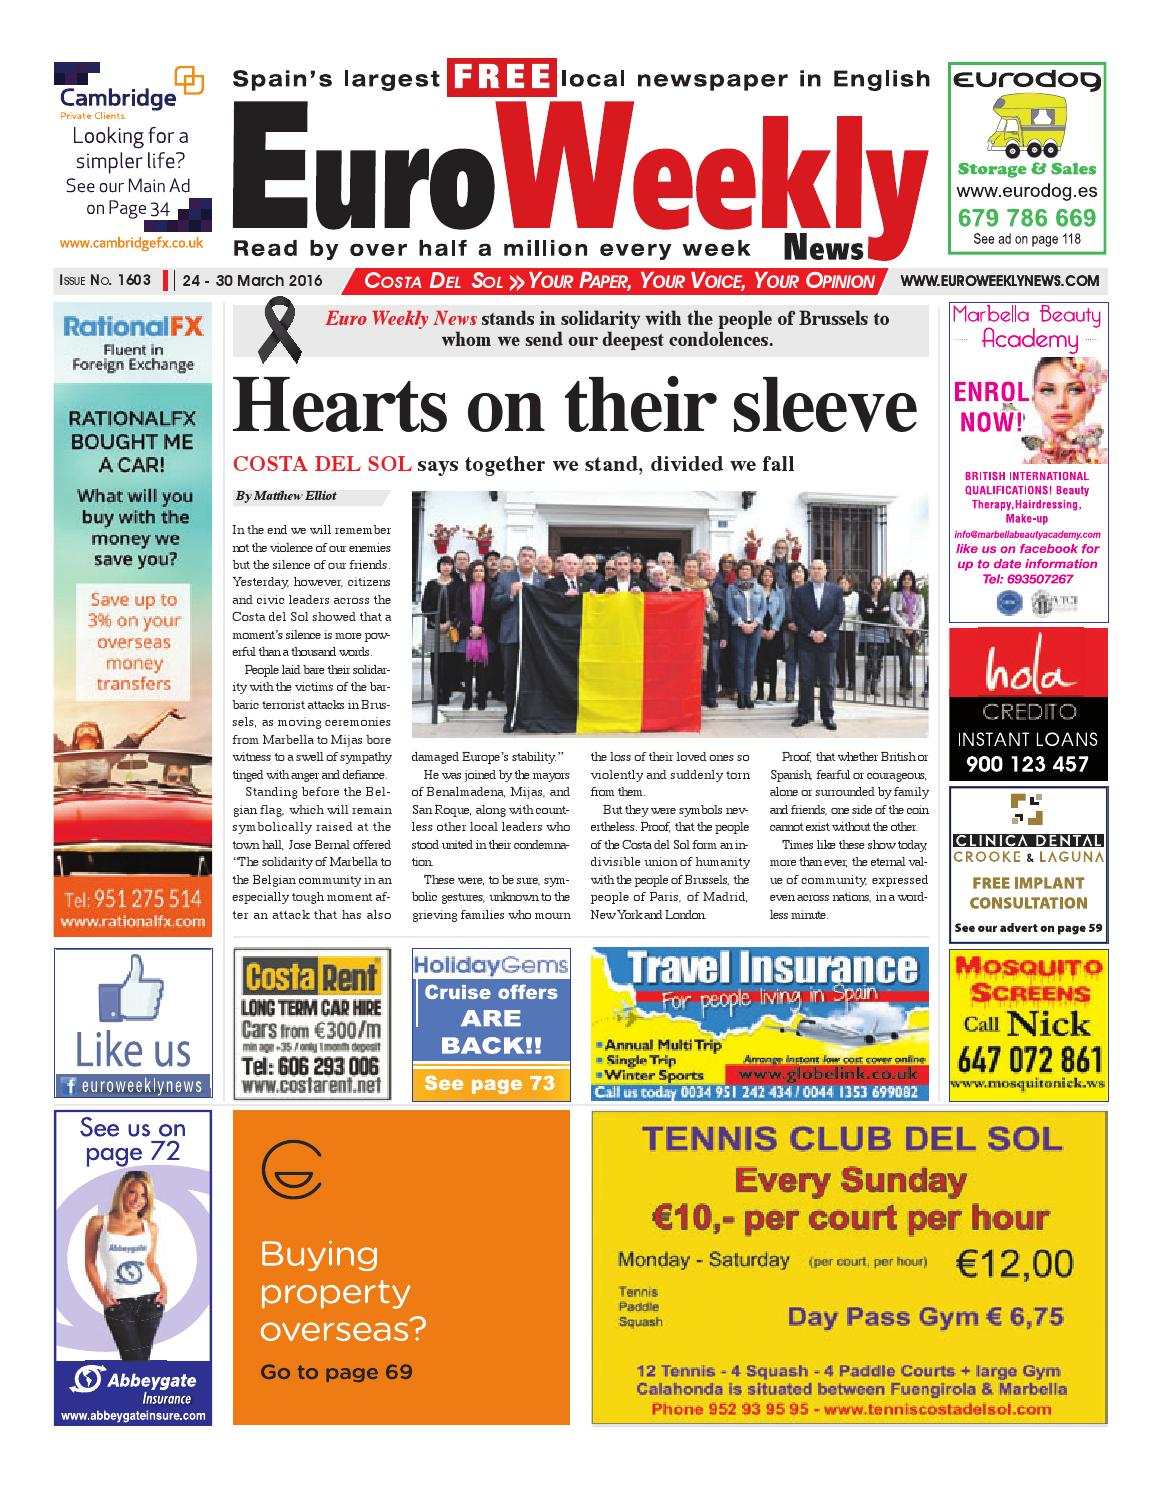 Euro weekly news costa del sol 24 30 march 2016 issue 1603 by euro weekly news costa del sol 24 30 march 2016 issue 1603 by euro weekly news media sa issuu fandeluxe Image collections